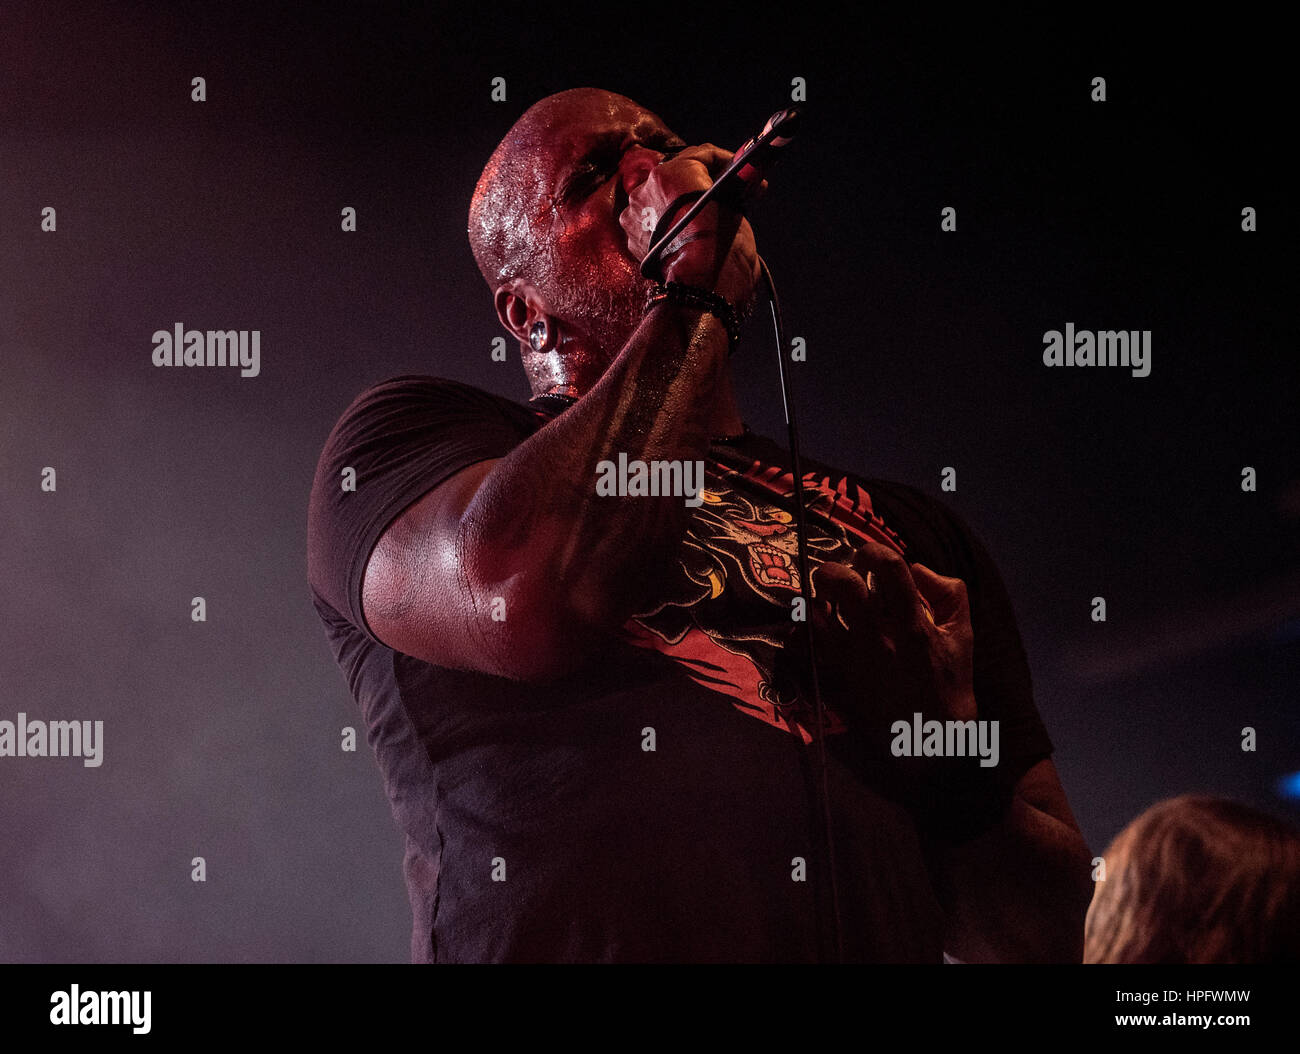 Derrick Green of Sepultura performing in Live Music Club at Trezzo Sull'Adda February 21st, 2017.Sepultura a - Stock Image